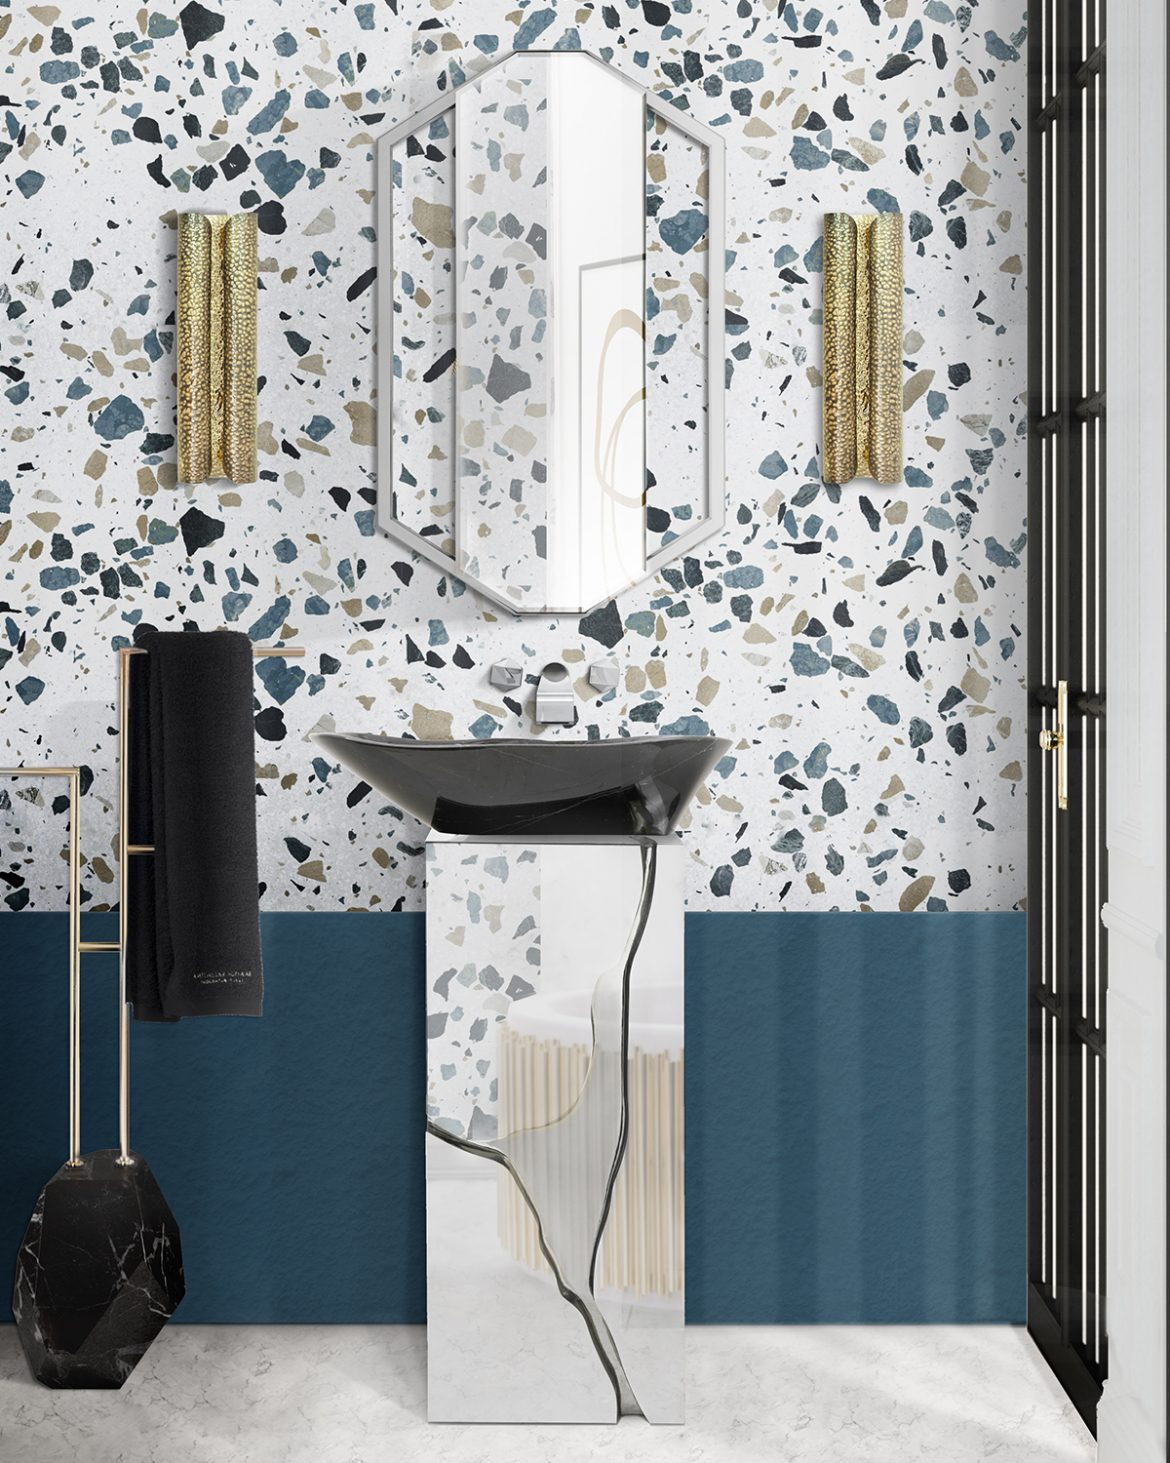 Terrazzo: The Design Trend Your Bathroom Needs terrazzo Terrazzo: The Design Trend Your Bathroom Needs terrazzo the design trend your bathroom needs 2